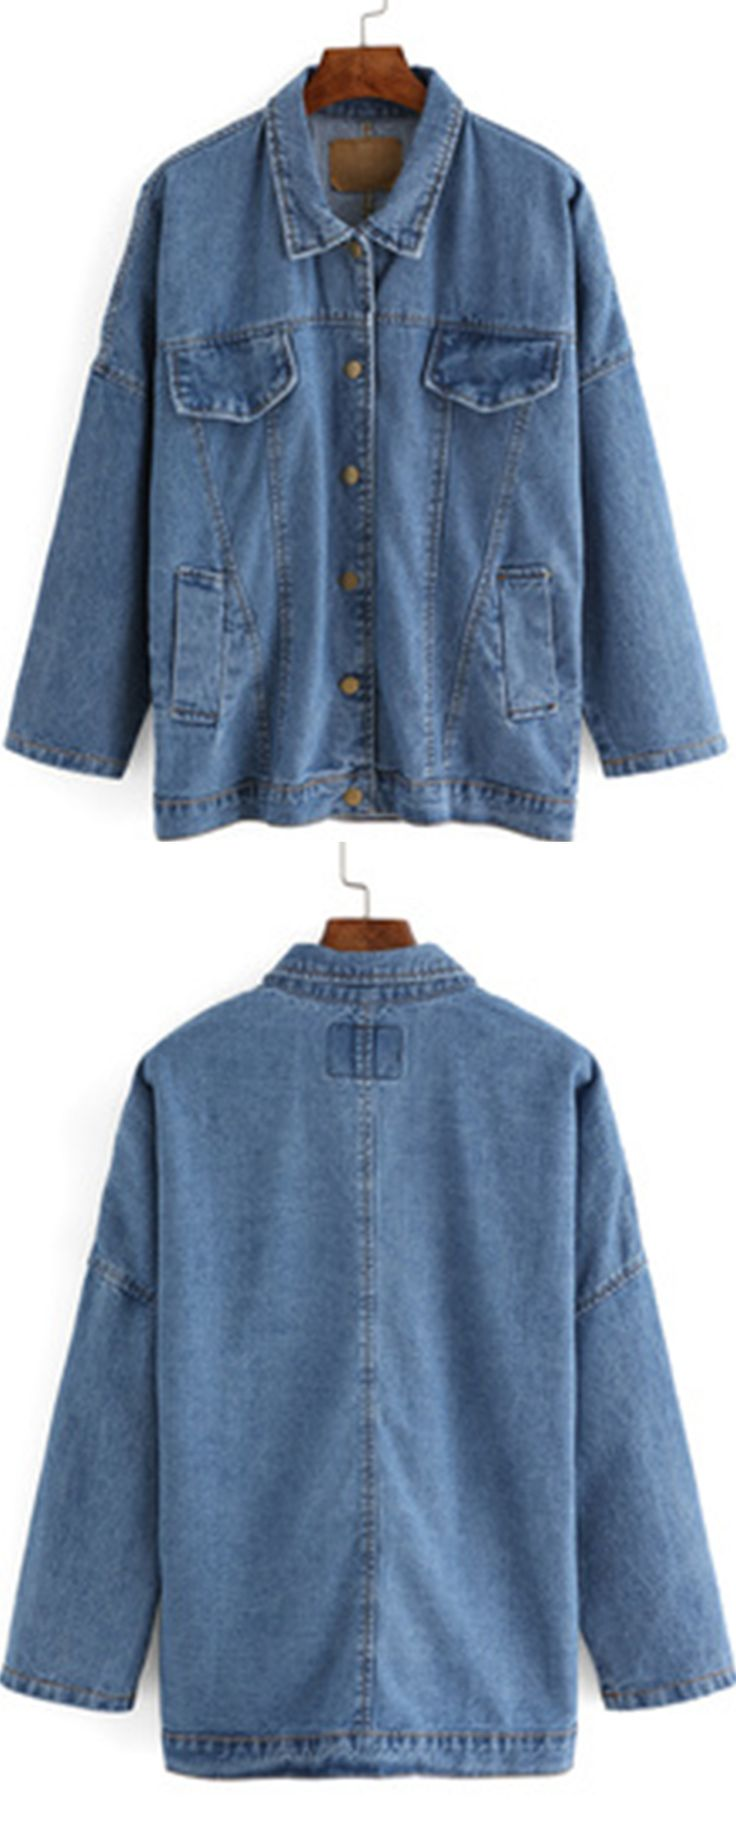 Add dropped shoulder design to denim trucker jacket ,the jeans jacket will be not that rigid as soon as possiable .Absoultely love this coat so much !